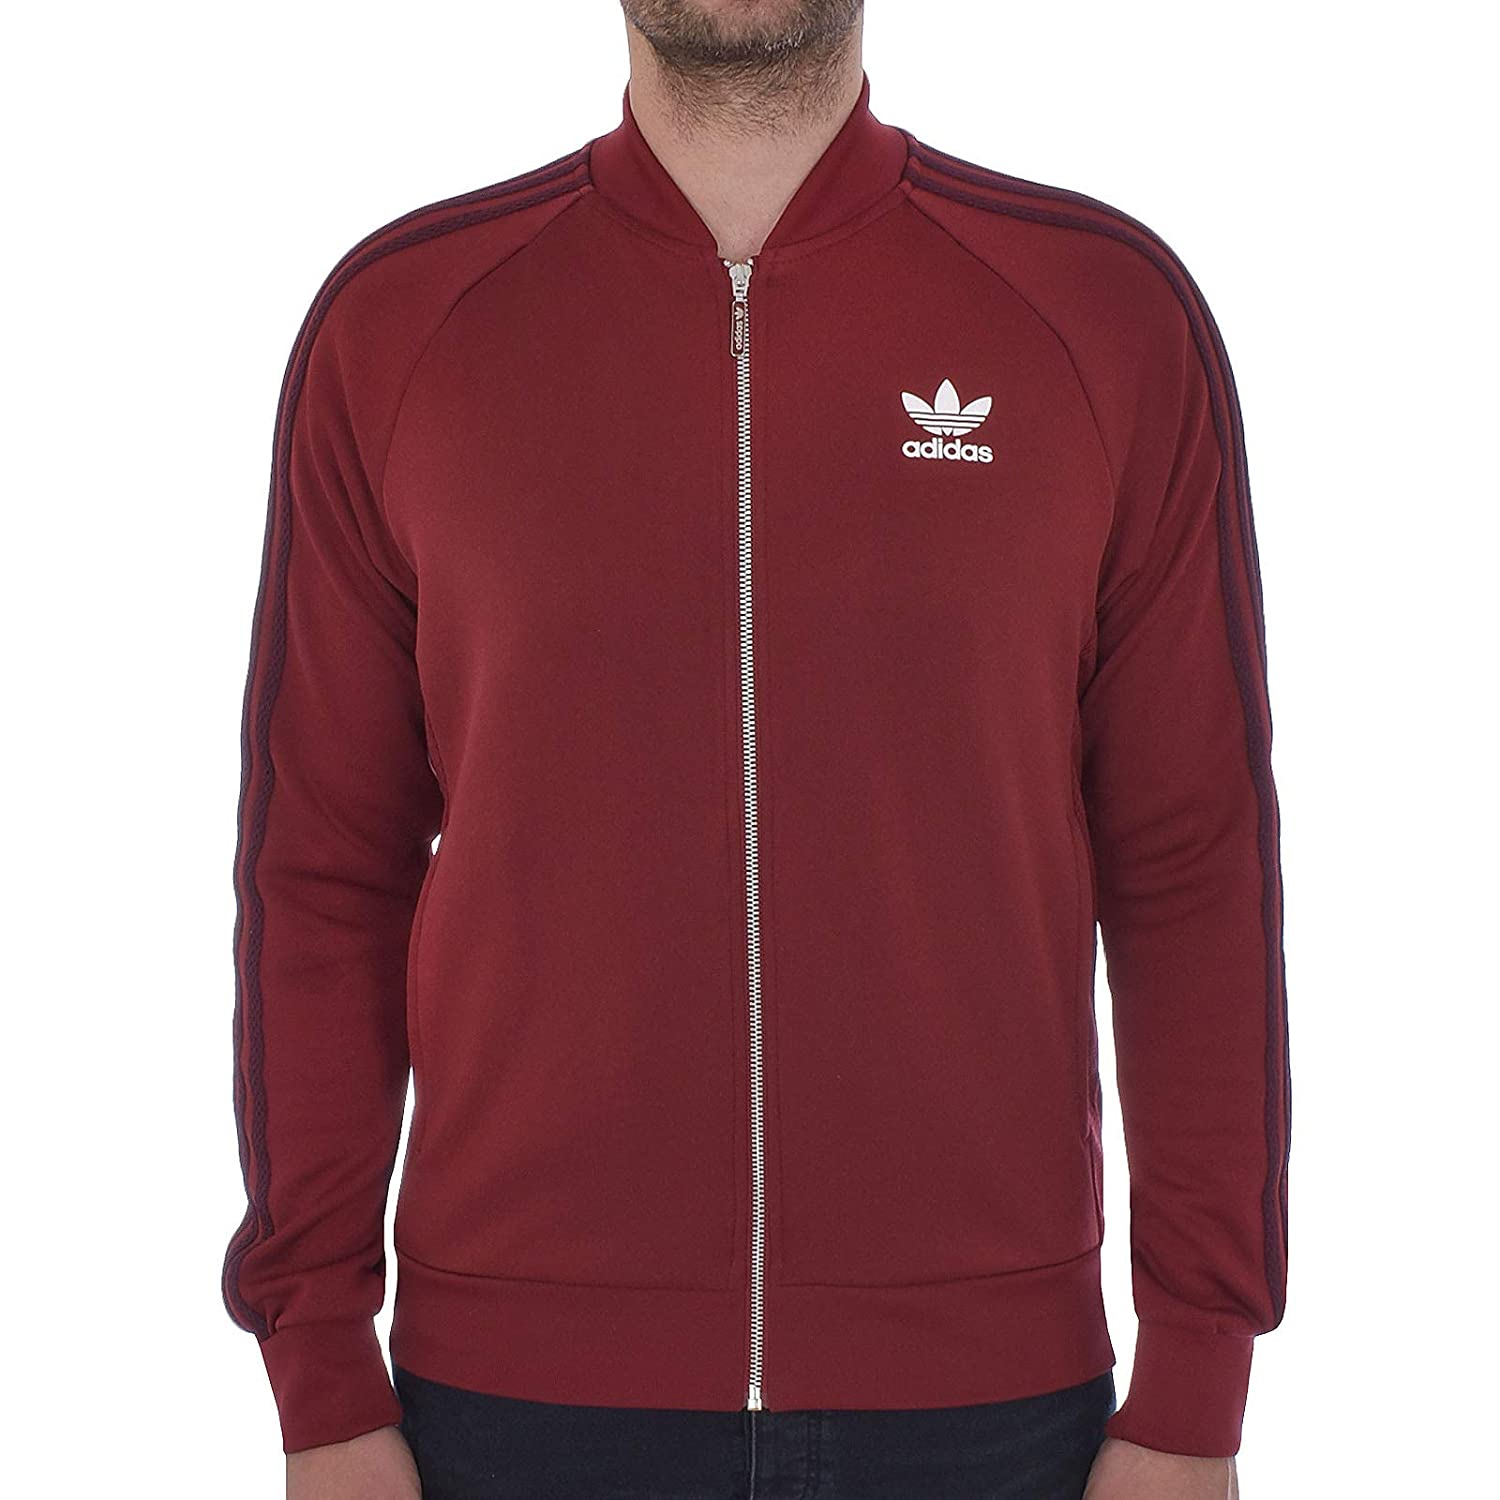 adidas Originals Track Jacket Mens SST Superstar Retro Tracksuit Top Trefoil New BQ7762